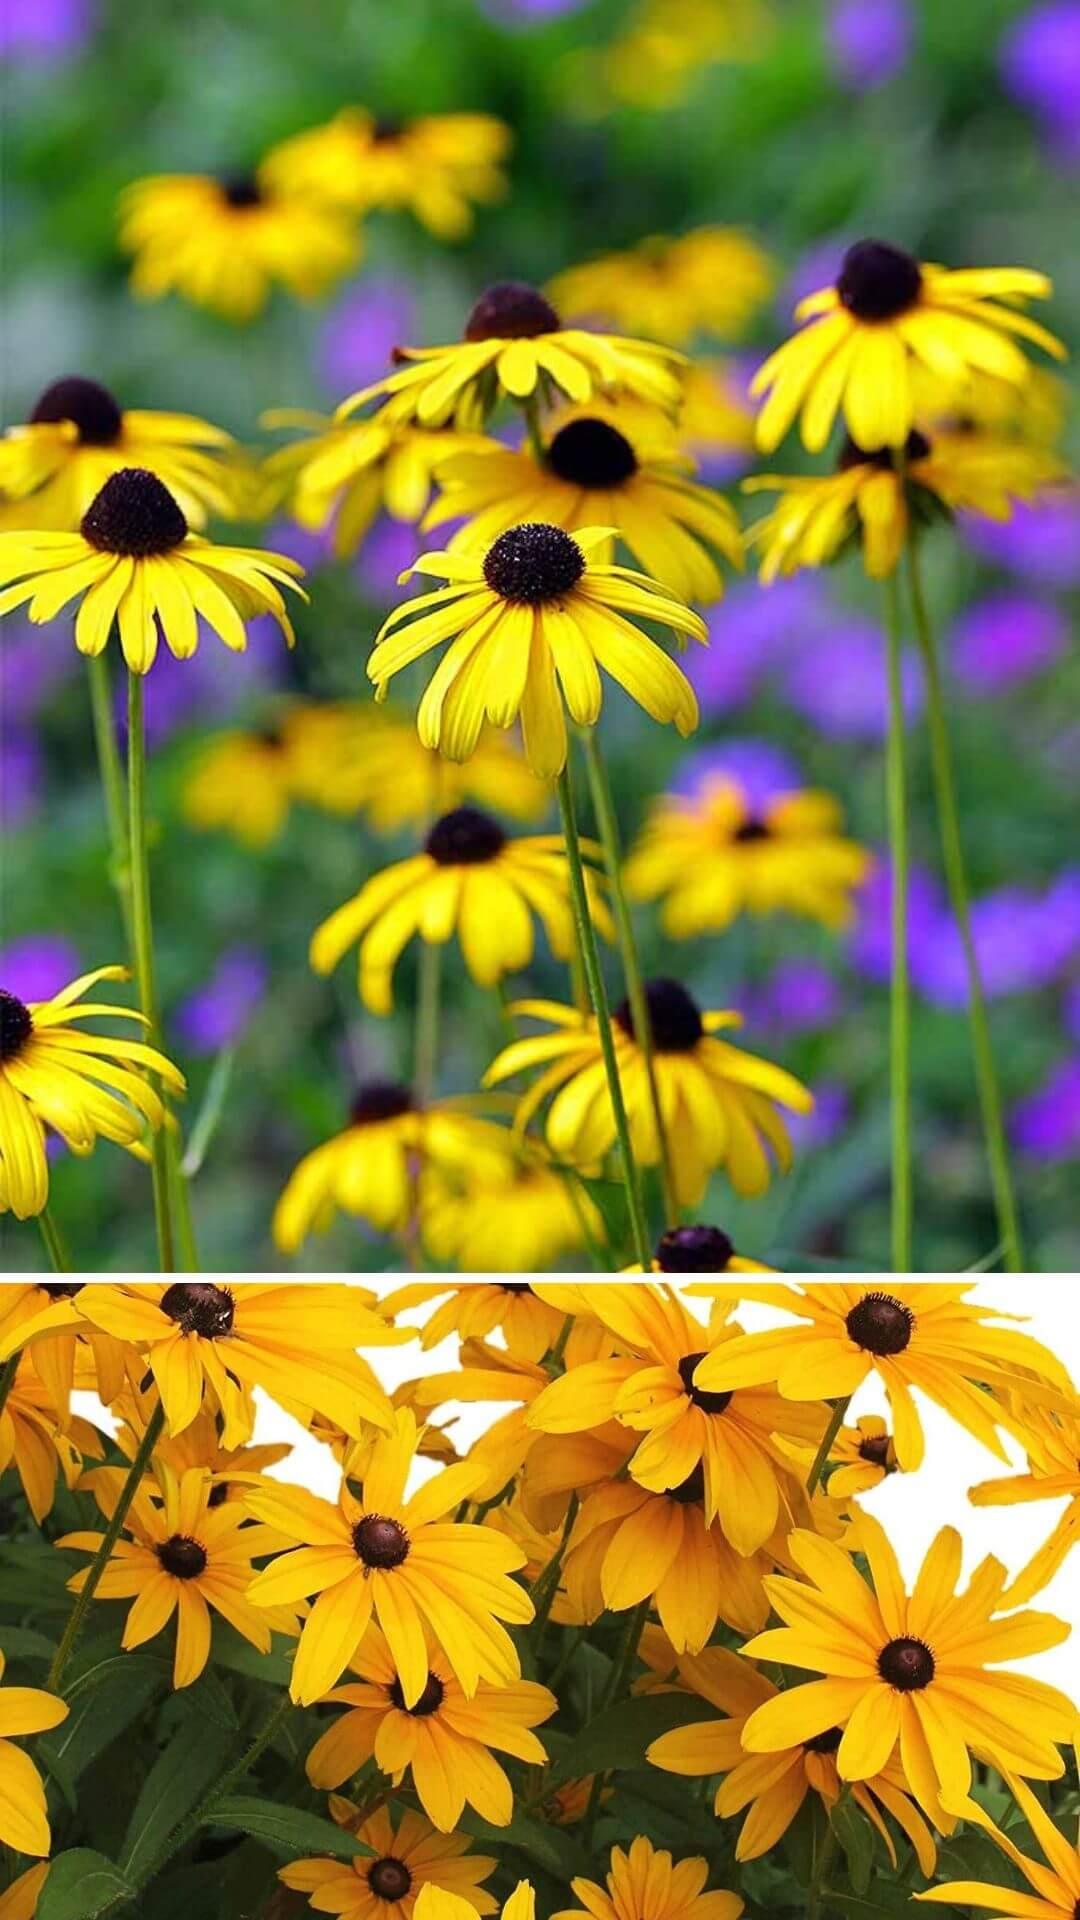 Black-eyed Susans (Rudbeckia hirta) - Heat and Drought Tolerant Plants for Landscaping